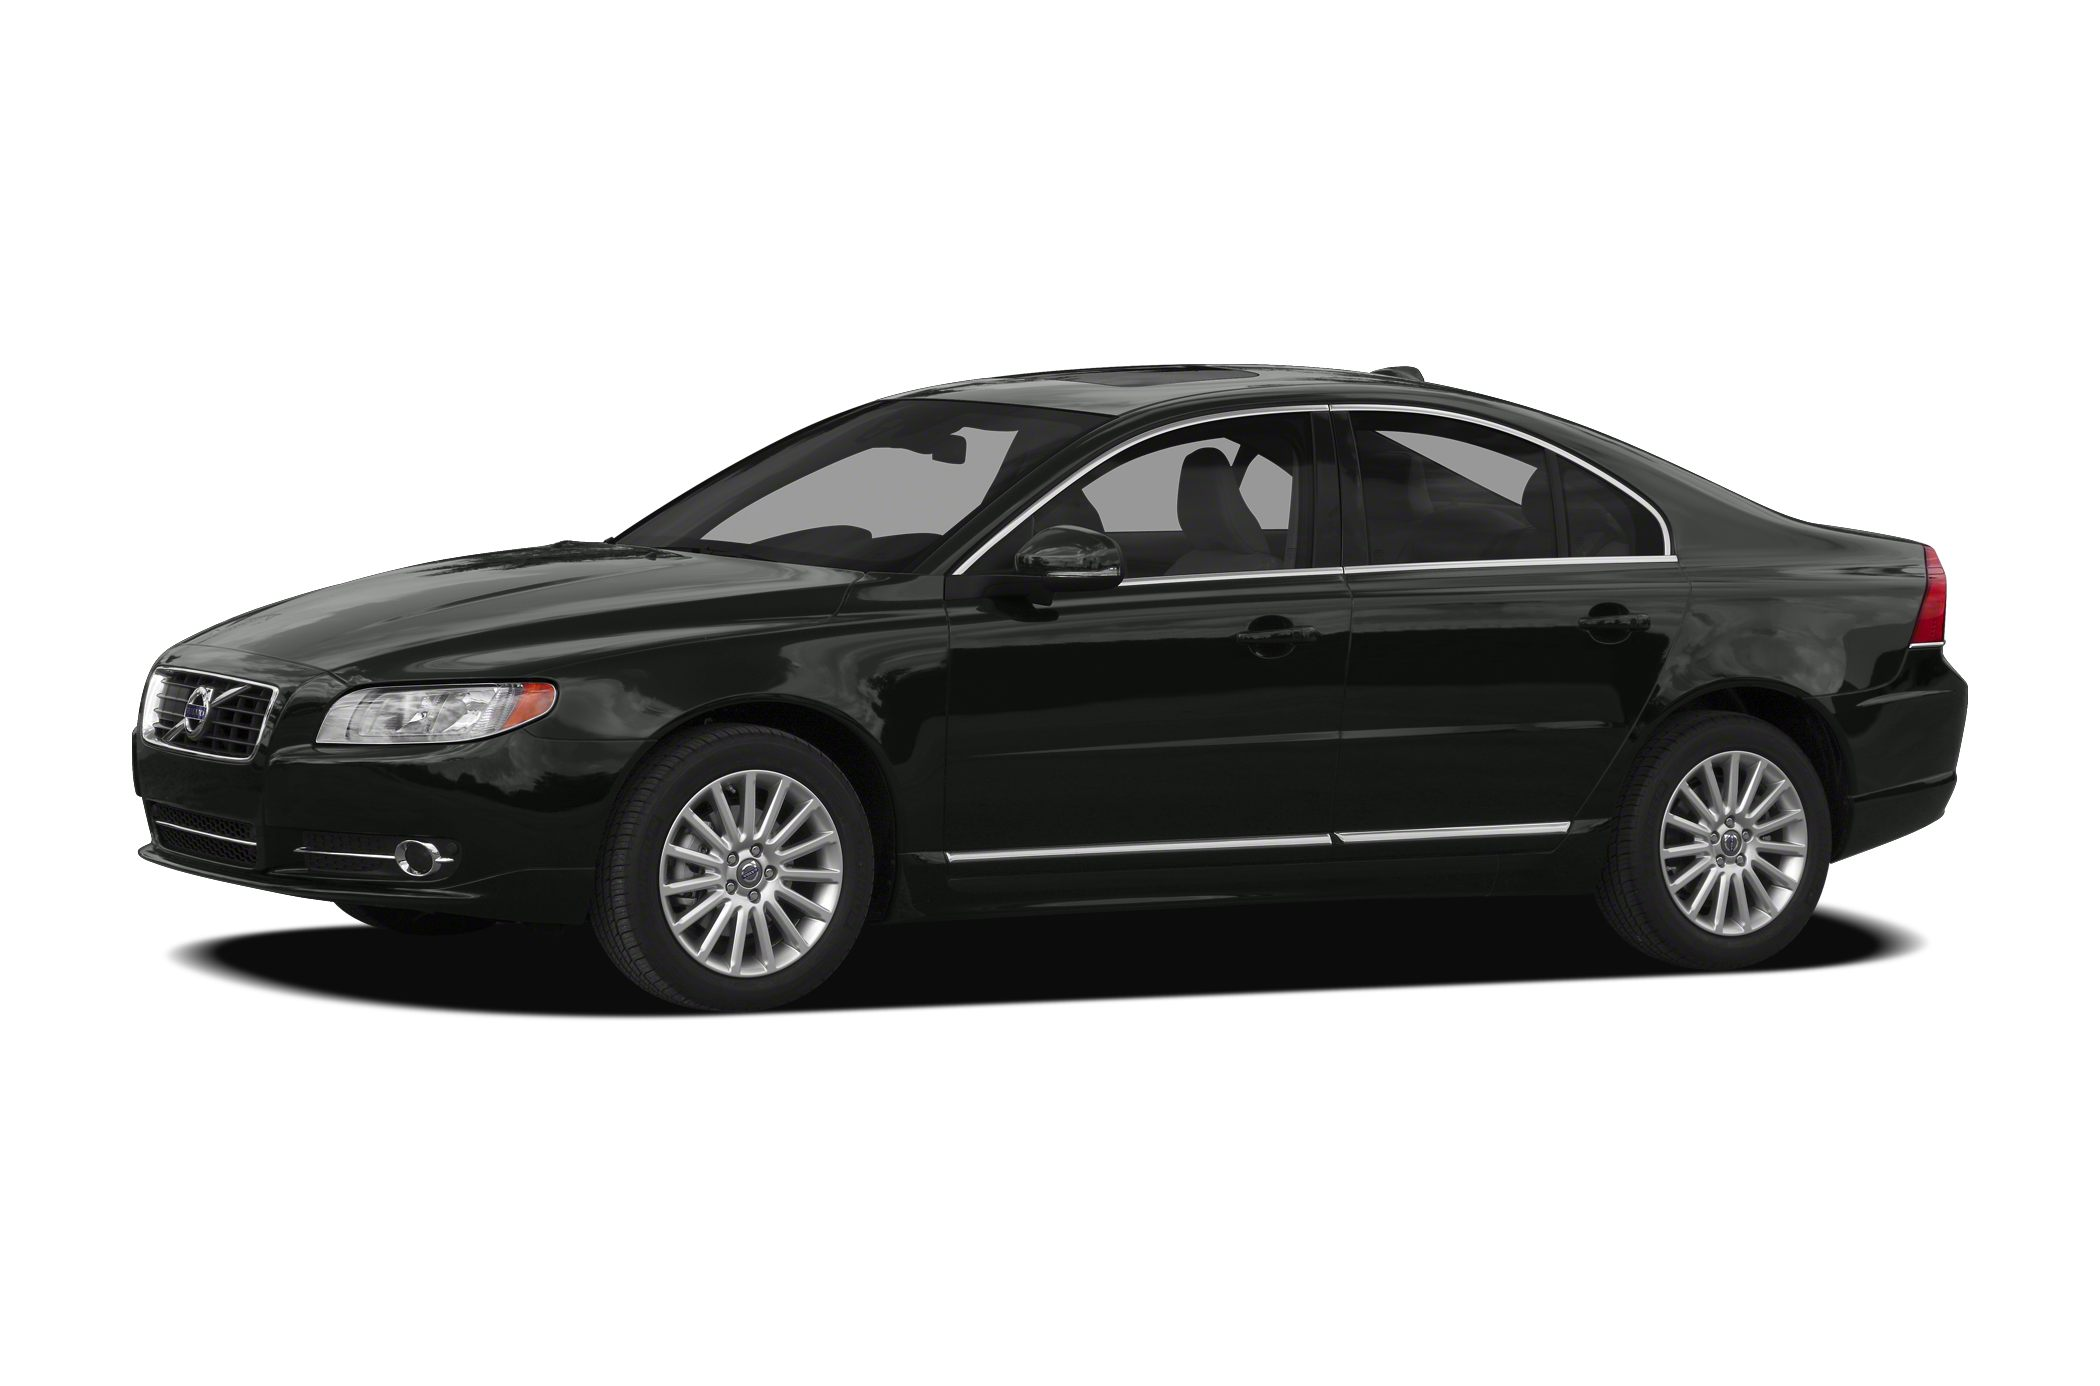 2012 Volvo S80 3.2 Platinum Sedan for sale in Bonita Springs for $28,991 with 18,568 miles.